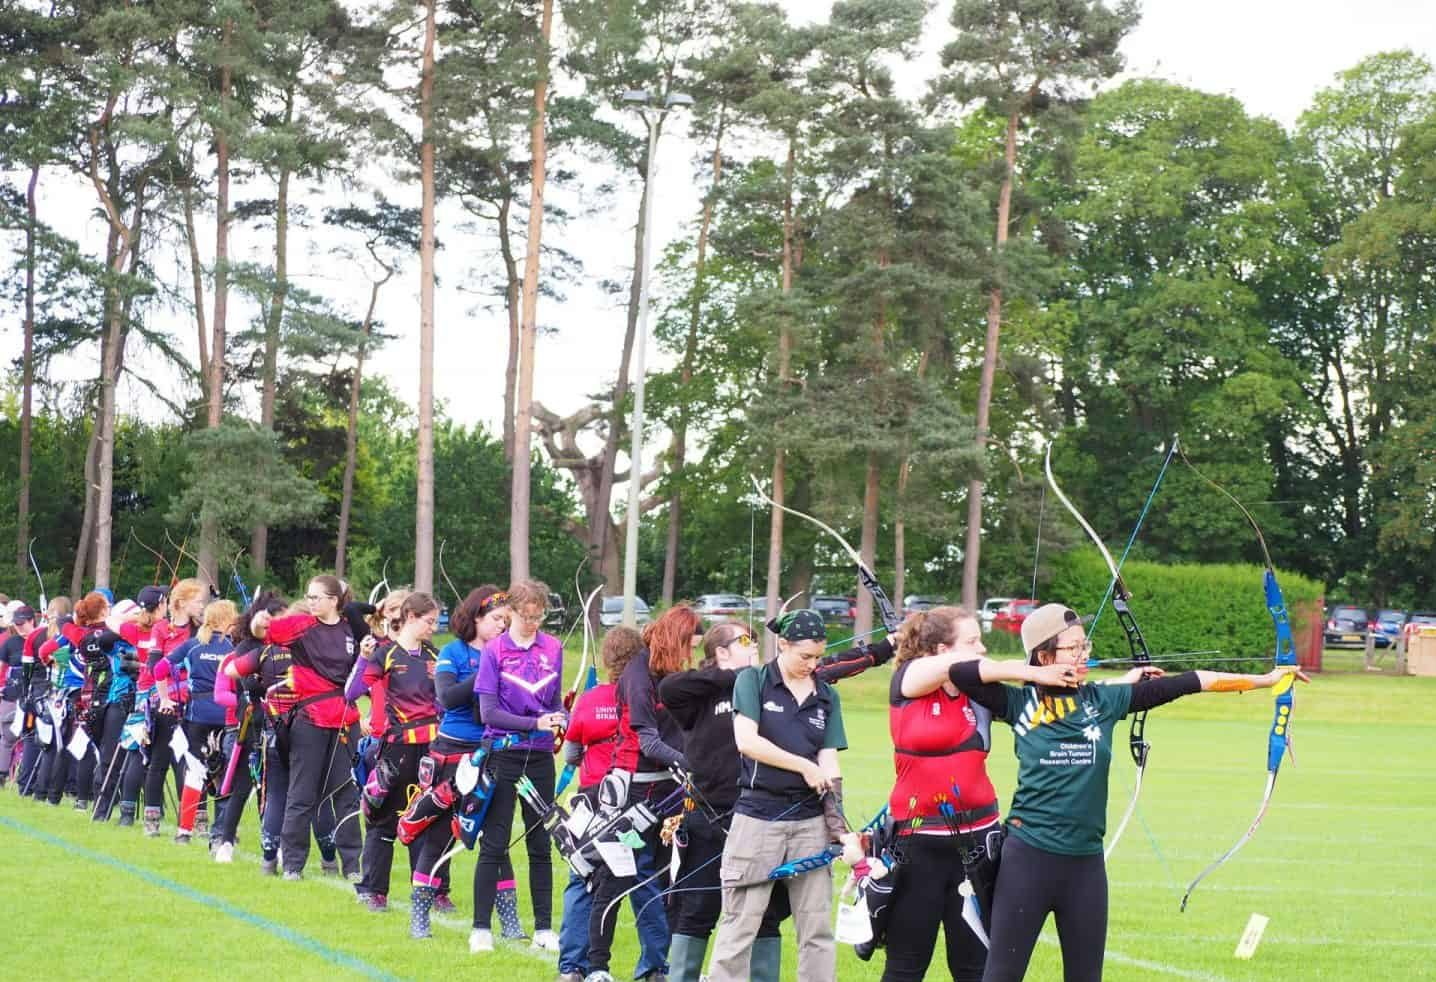 Students taking part in a university archery competition. Credit: Malcolm Rees